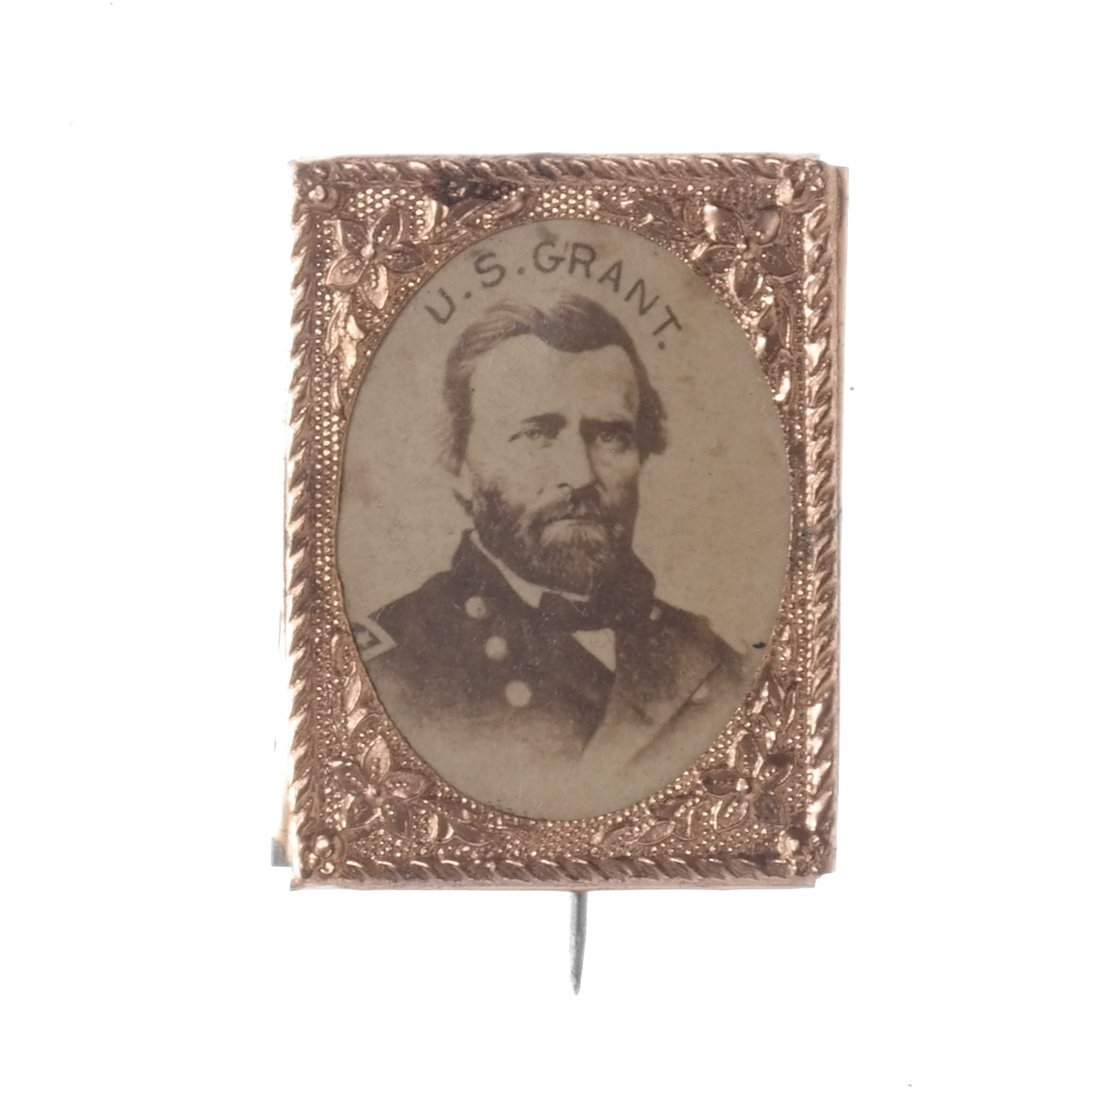 U.S. Grant Five Gem-Size Portrait Stickpins - 6